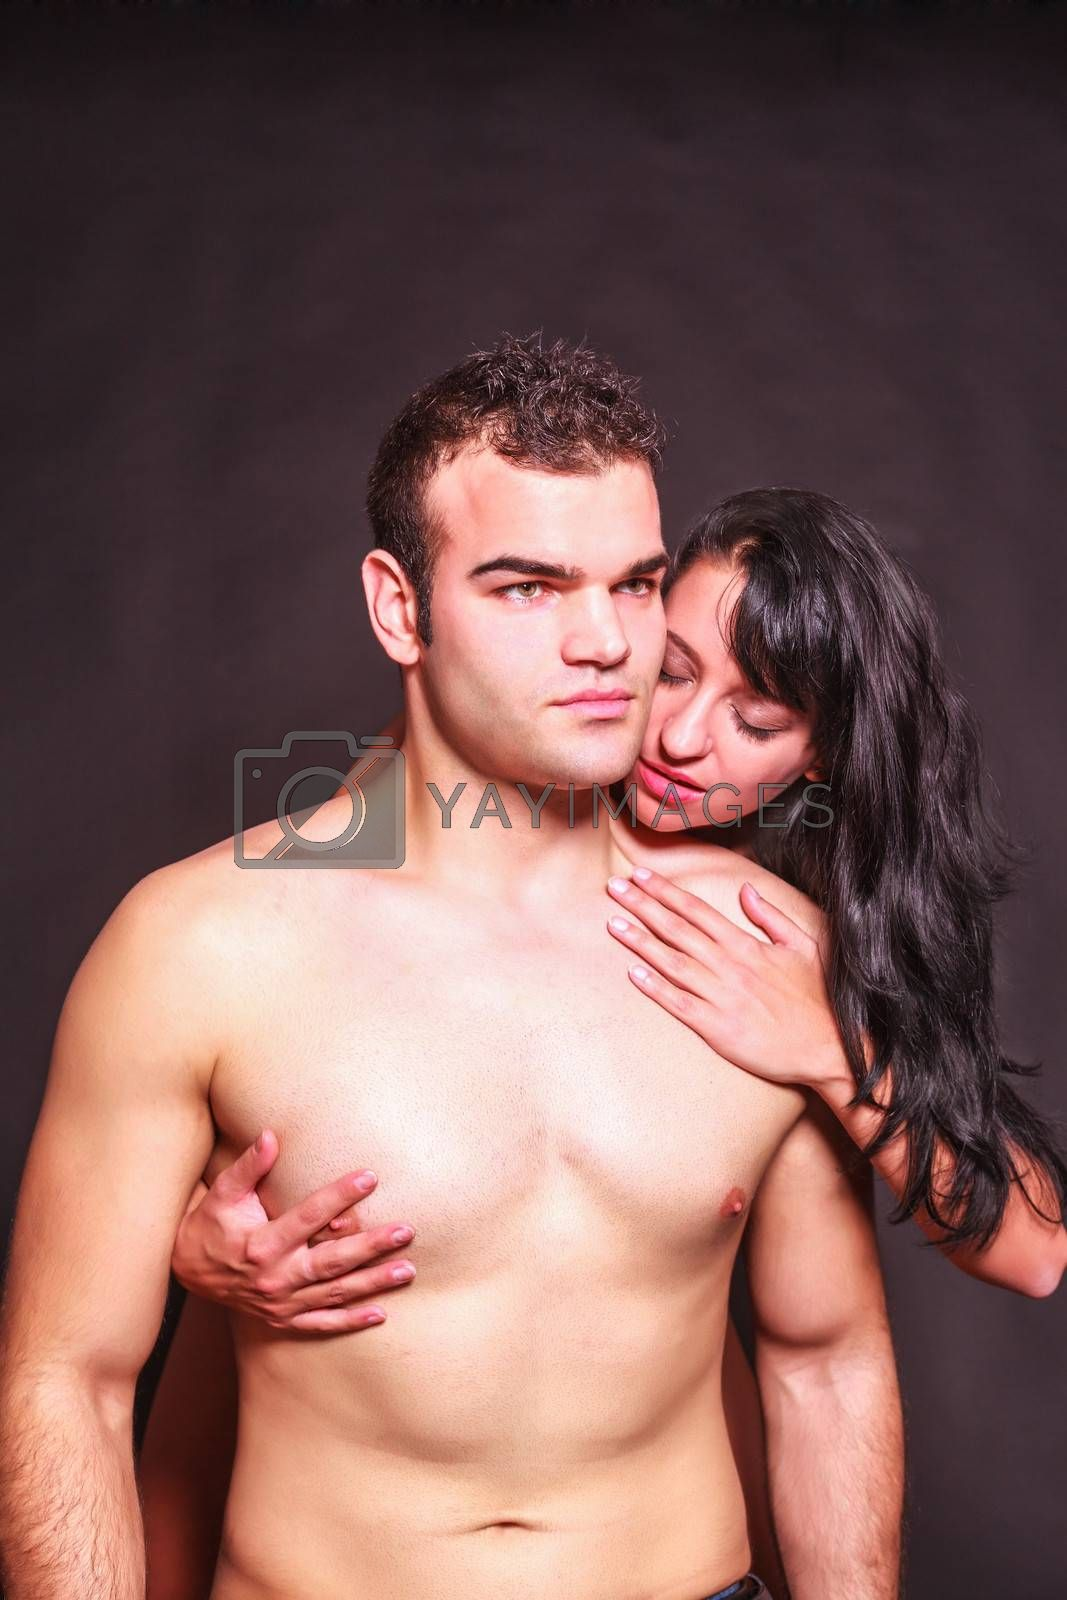 Seductive passionate woman running her hands over the naked body of a handsome young man as she nibbles at his neck from behind